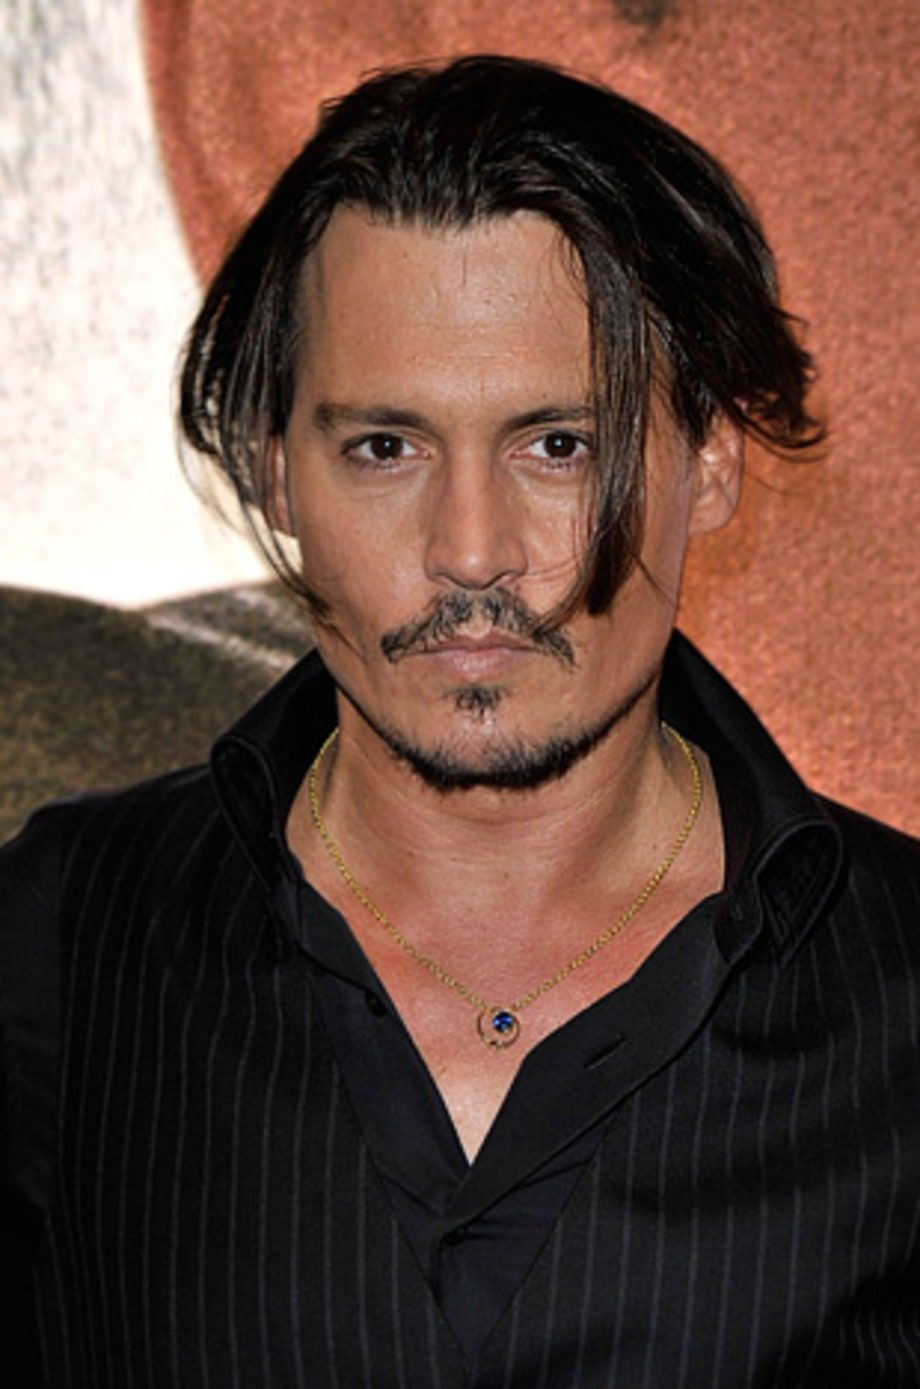 Inquiry johnny depp lost his virginity interesting